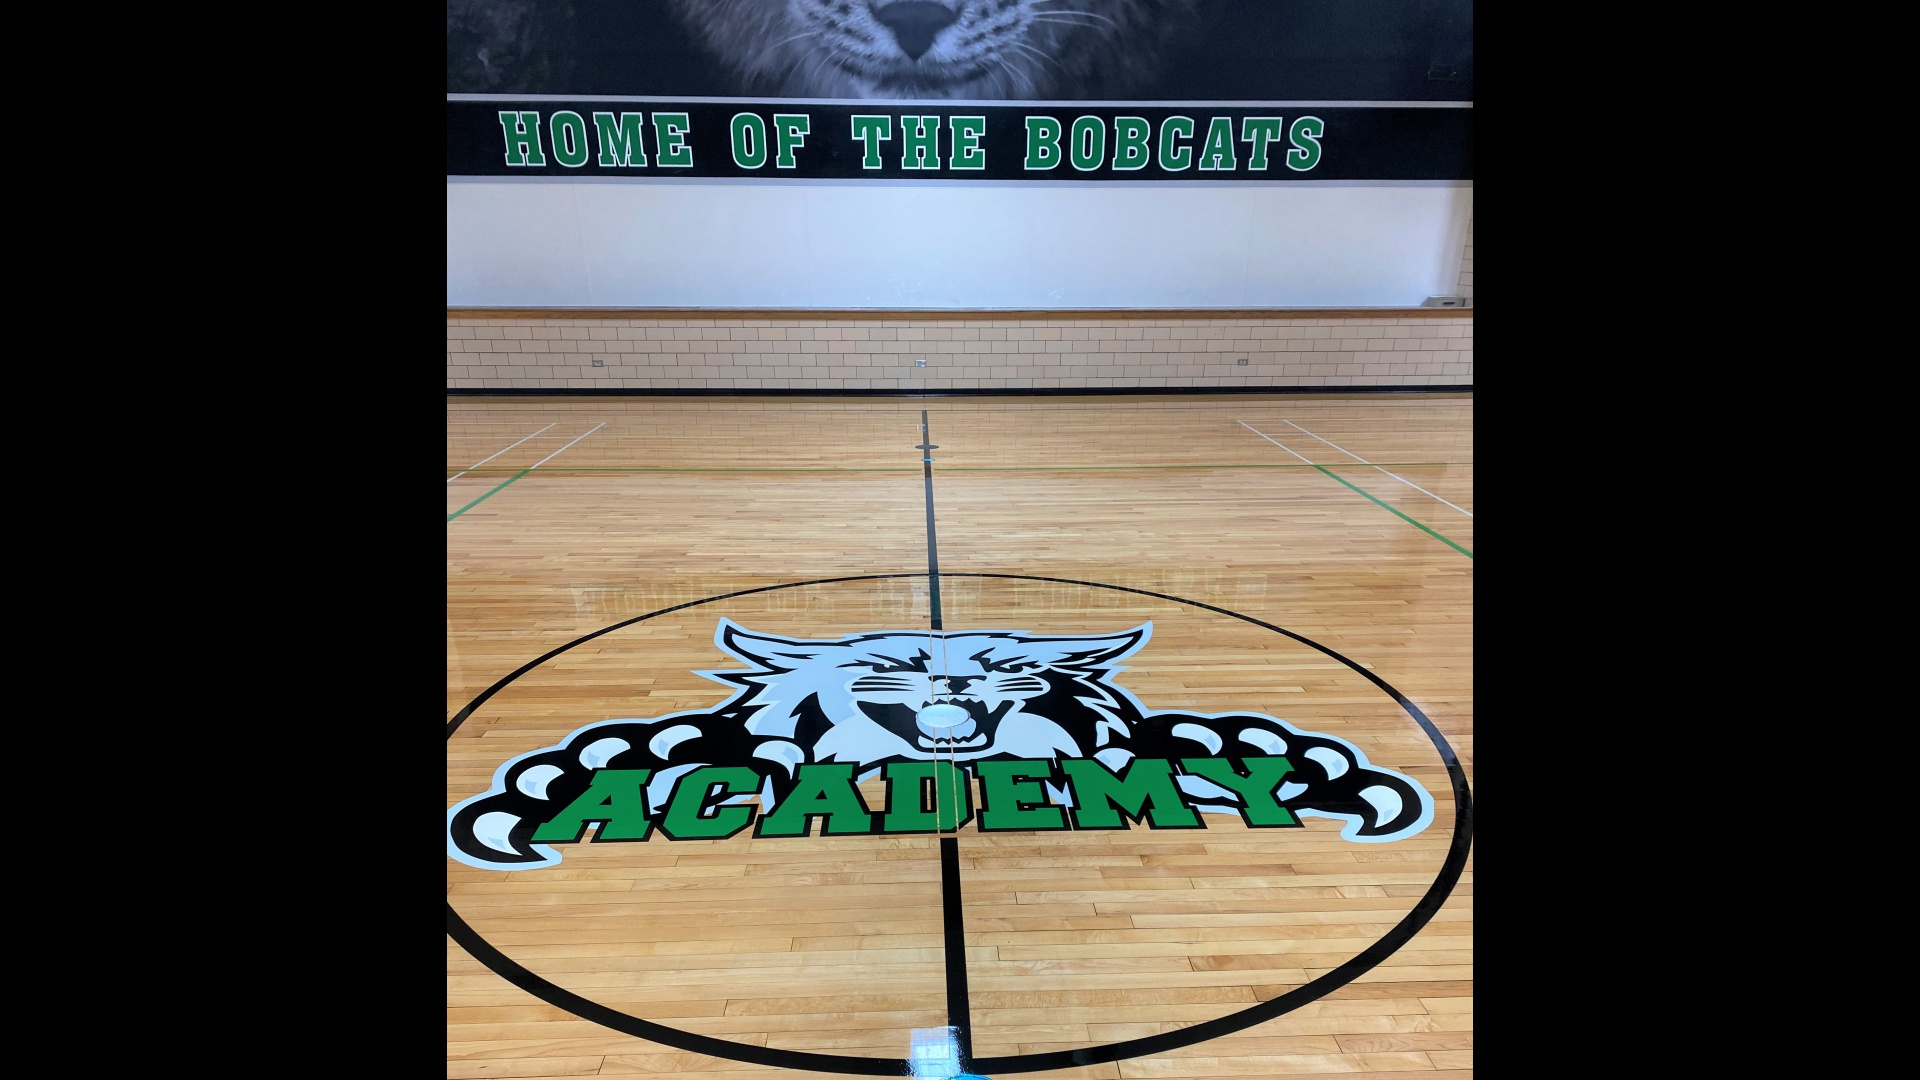 slidshow image - New flooring and logo in the gym -